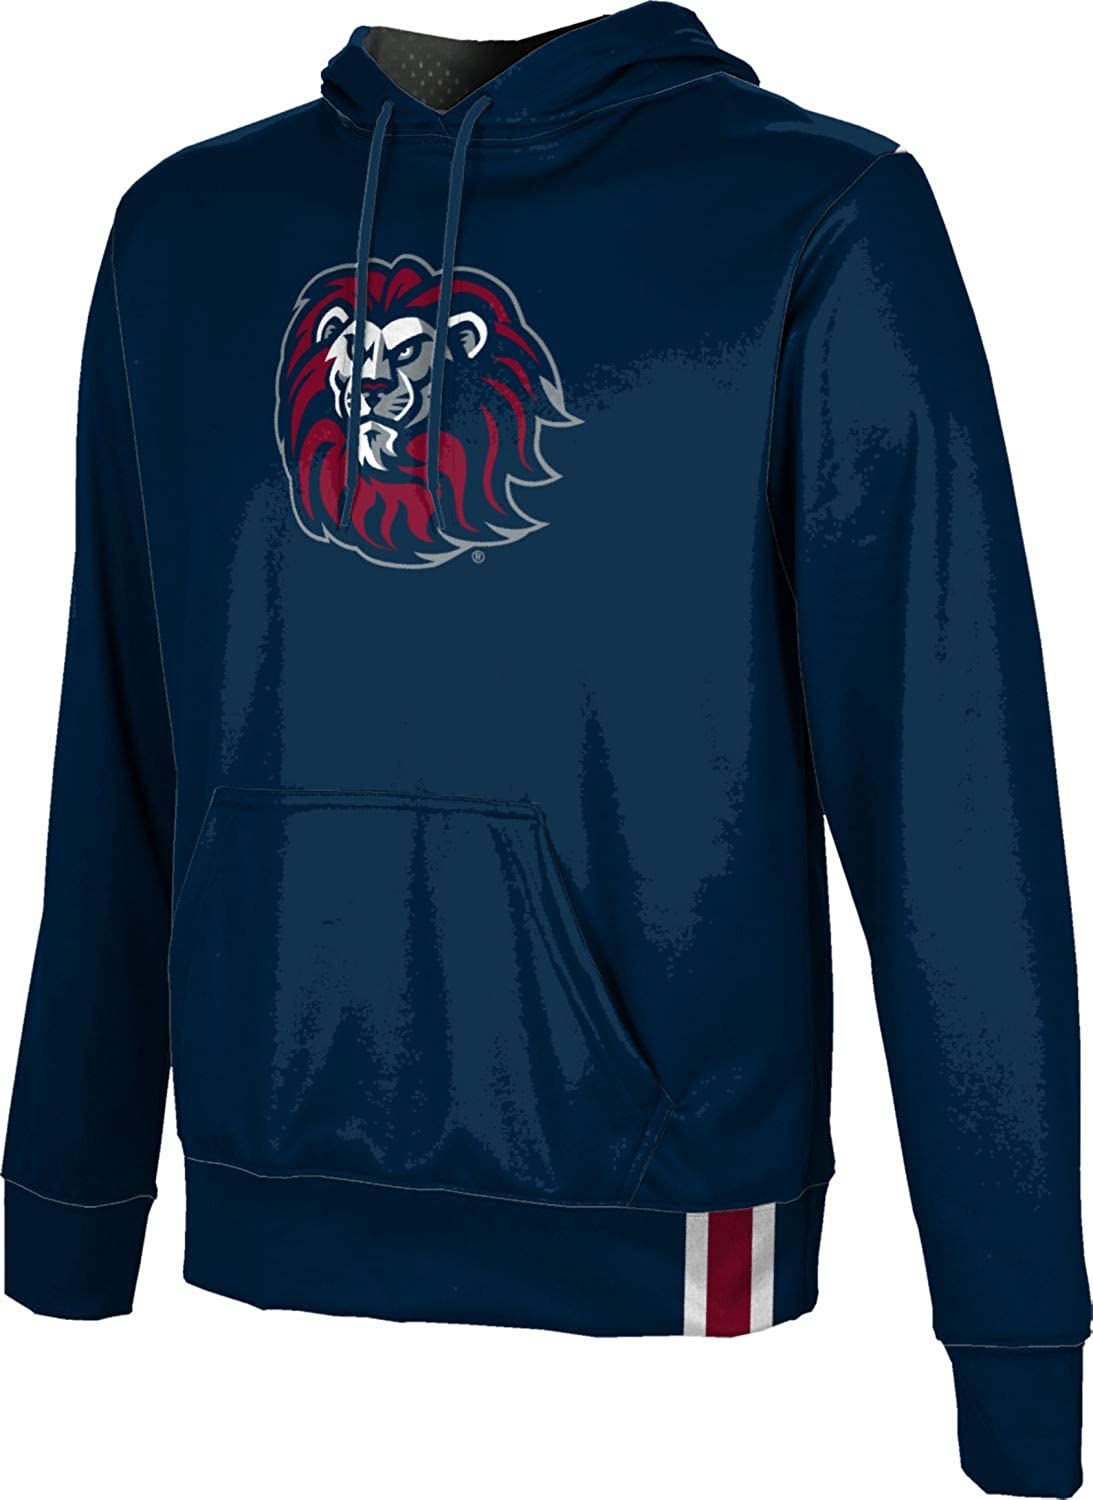 Rare ProSphere Loyola Marymount University Pullover Sch SEAL limited product Hoodie Boys'